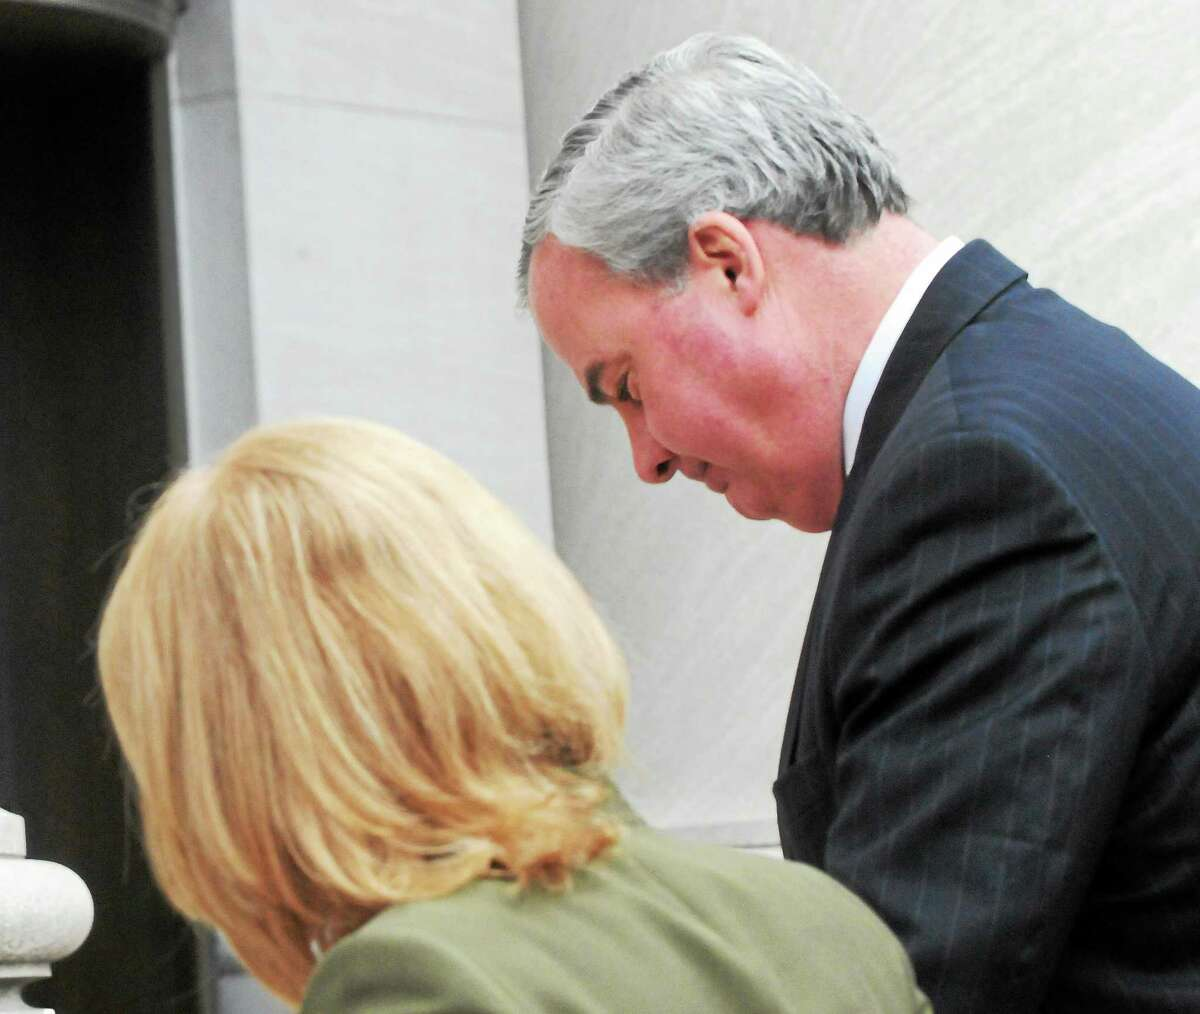 Former Connecticut Governor John G. Rowland, right, arrives at the Federal Courthouse in New Haven.